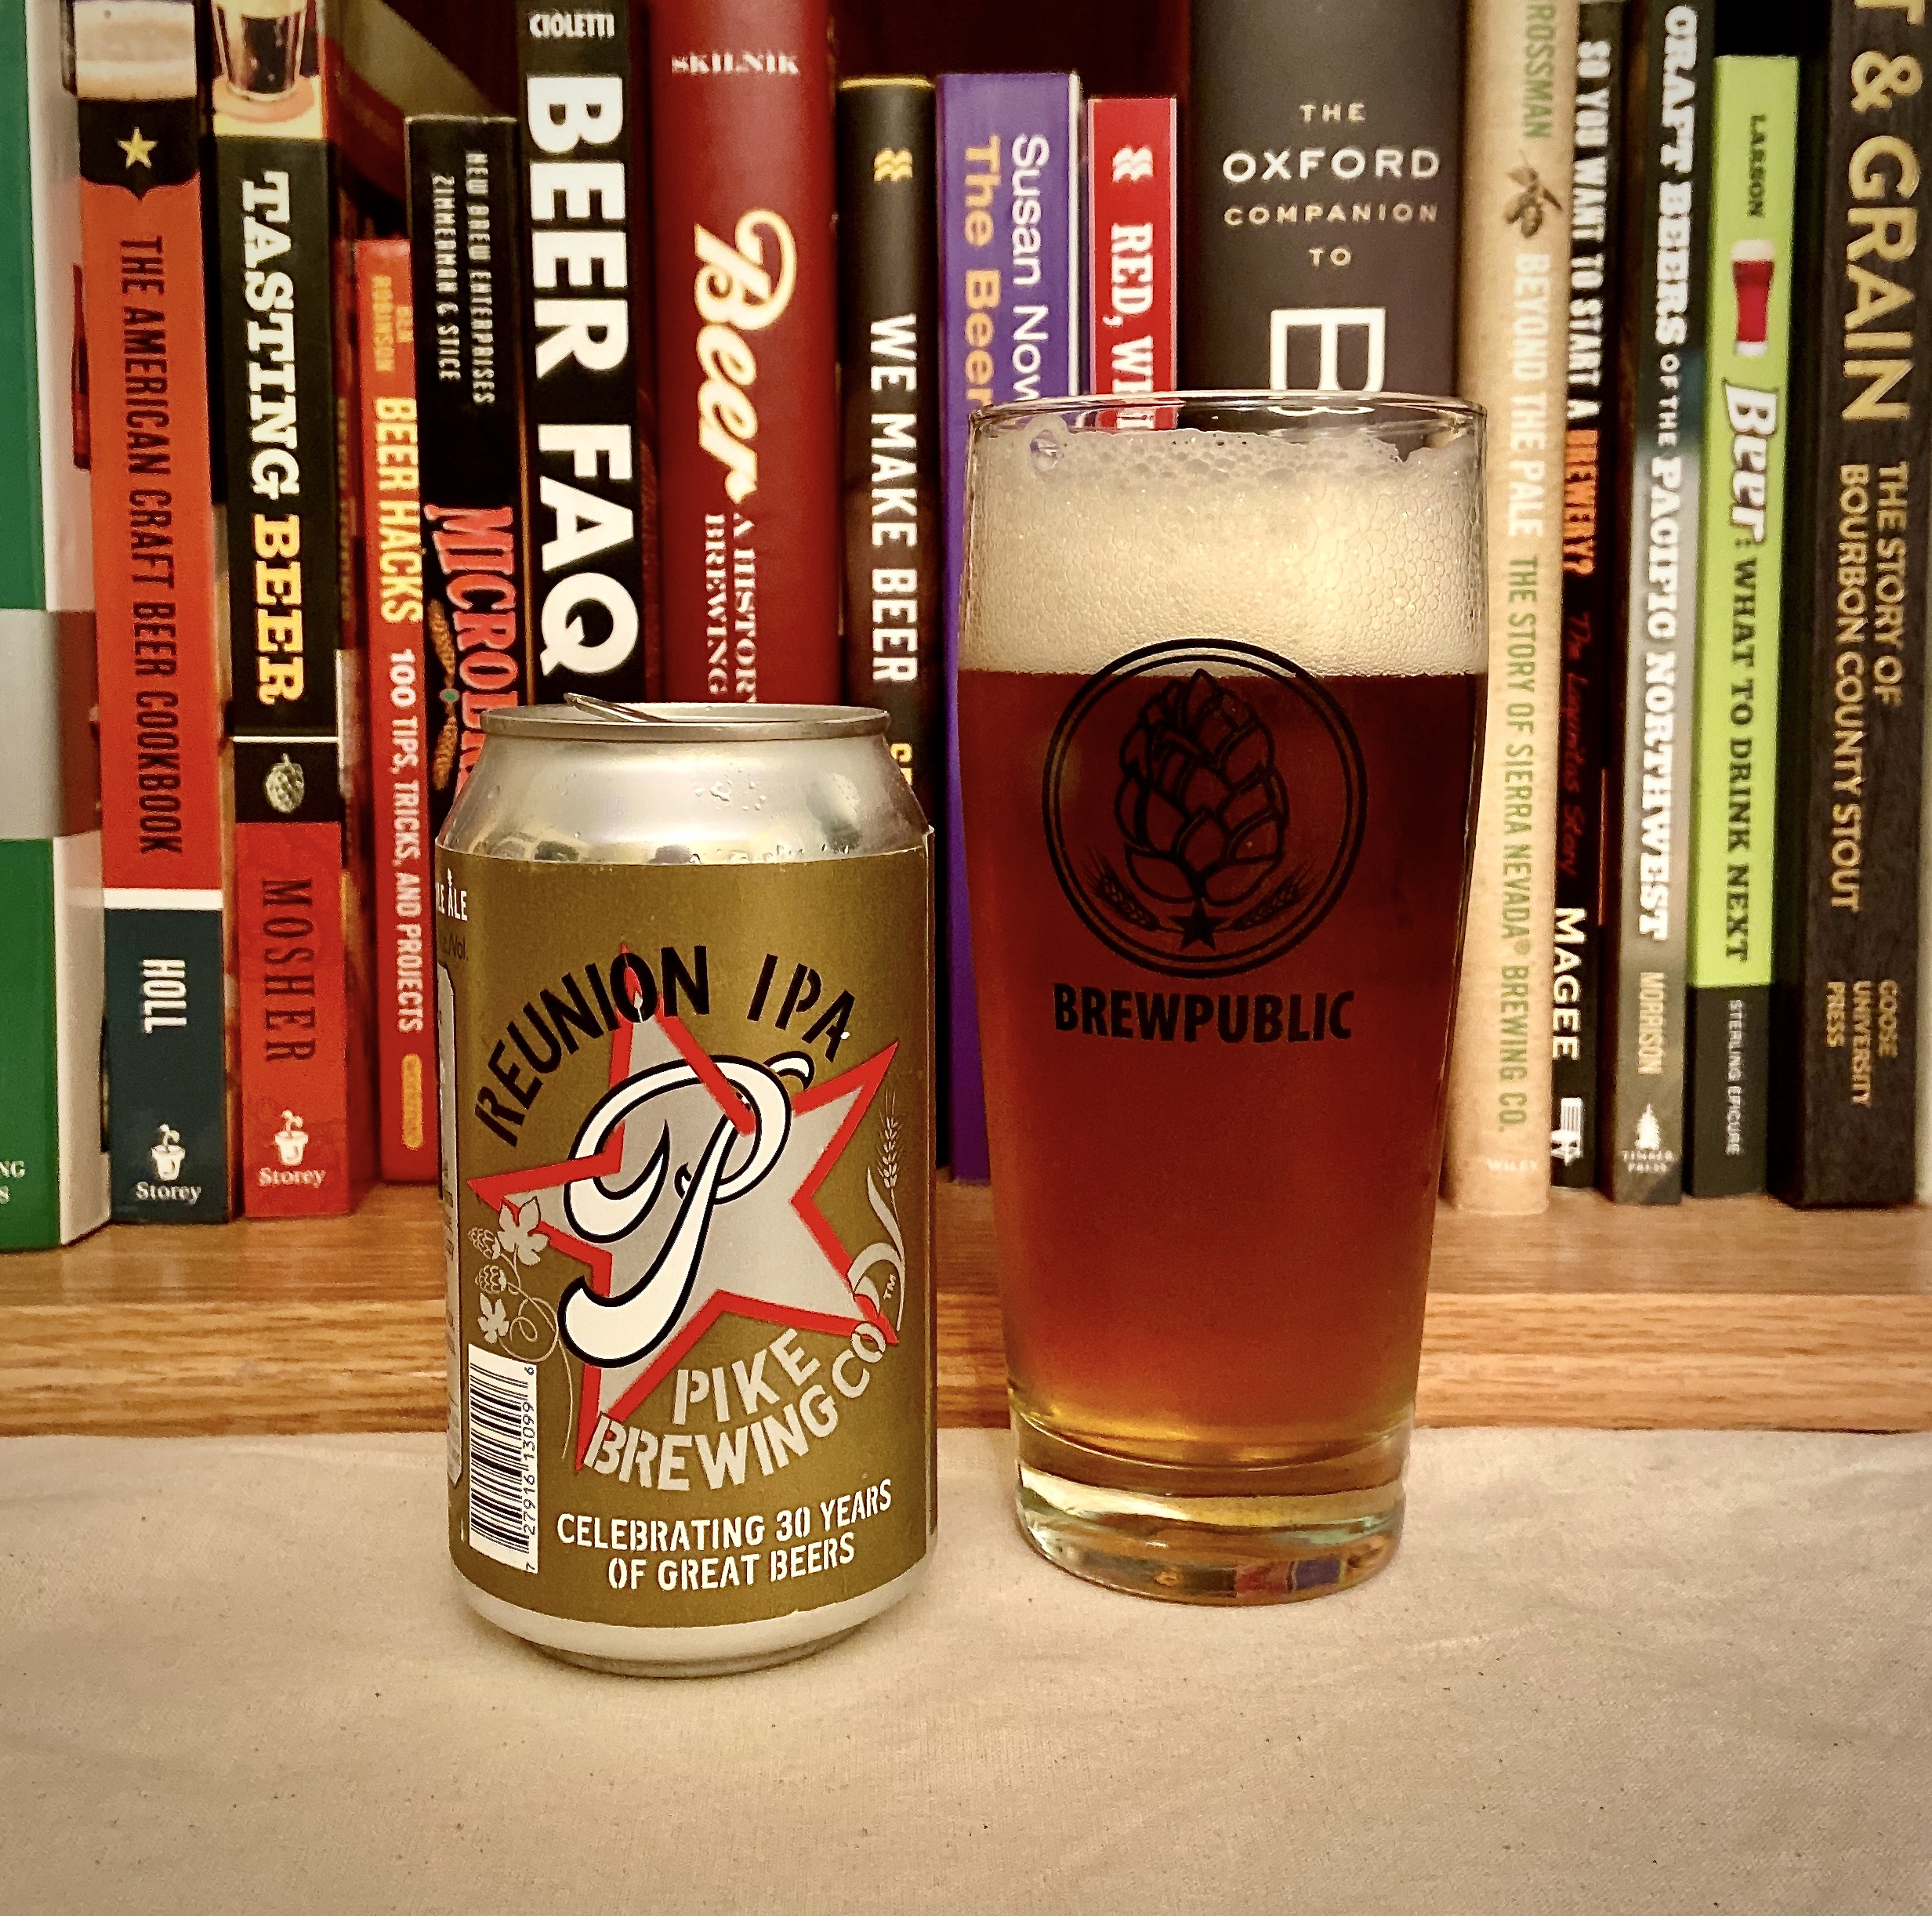 Pike Brewing Reunion IPA served in a BREWPUBLIC glass.